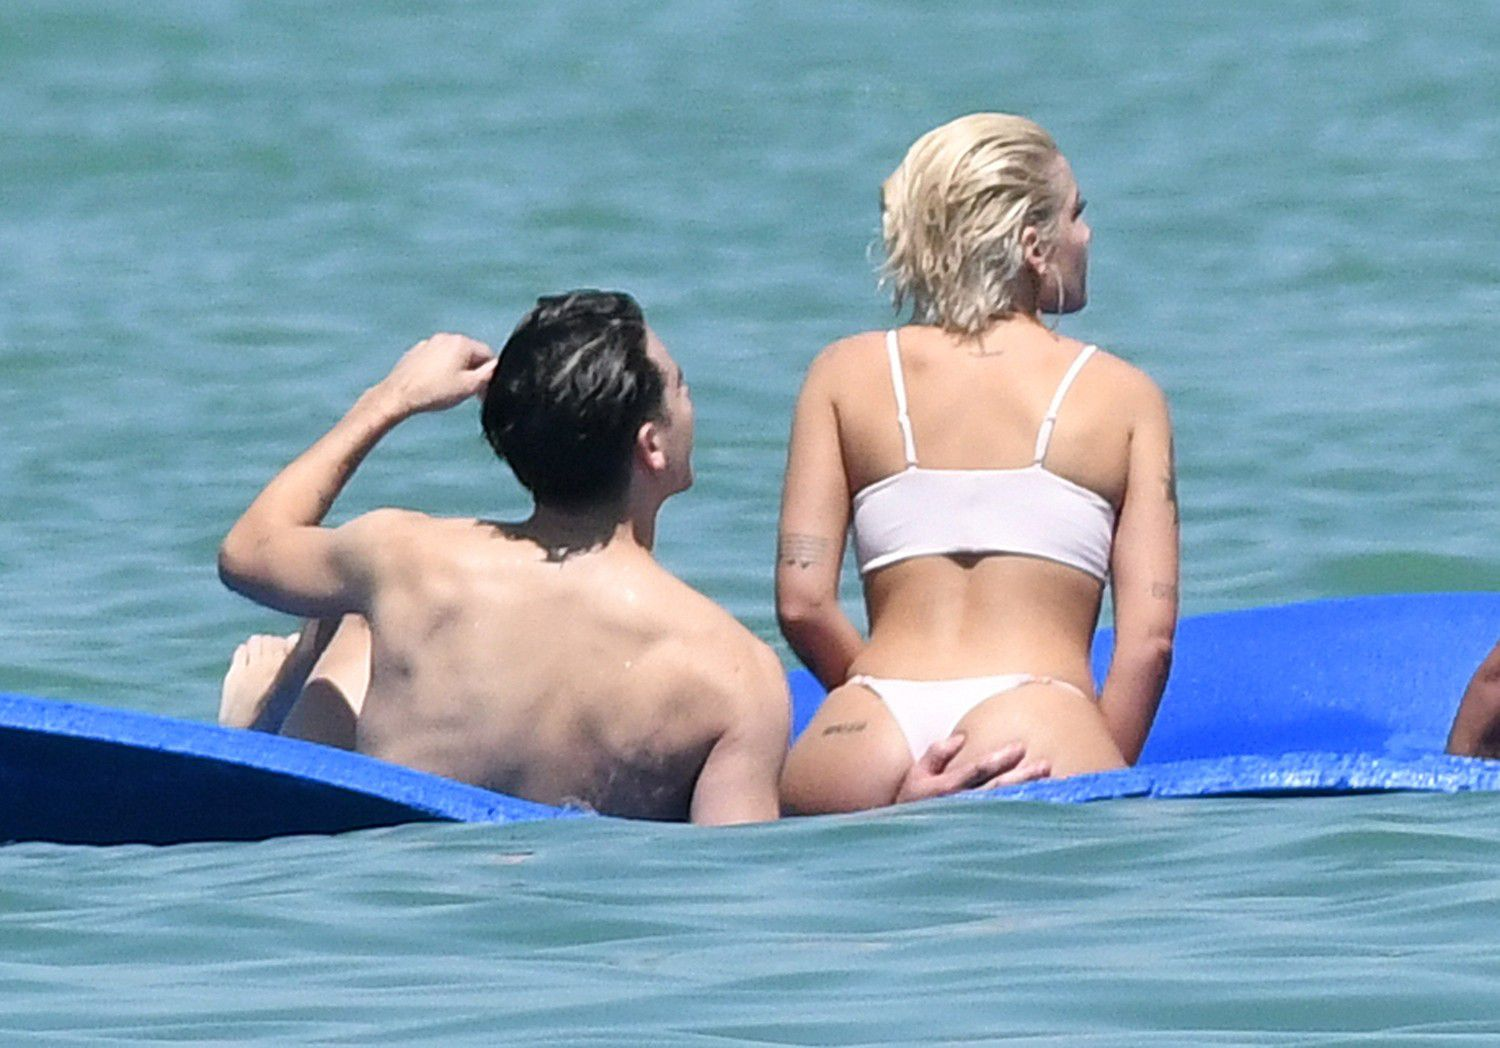 halsey-wearing-a-white-thong-bikini-on-a-yacht-in-miami-7815